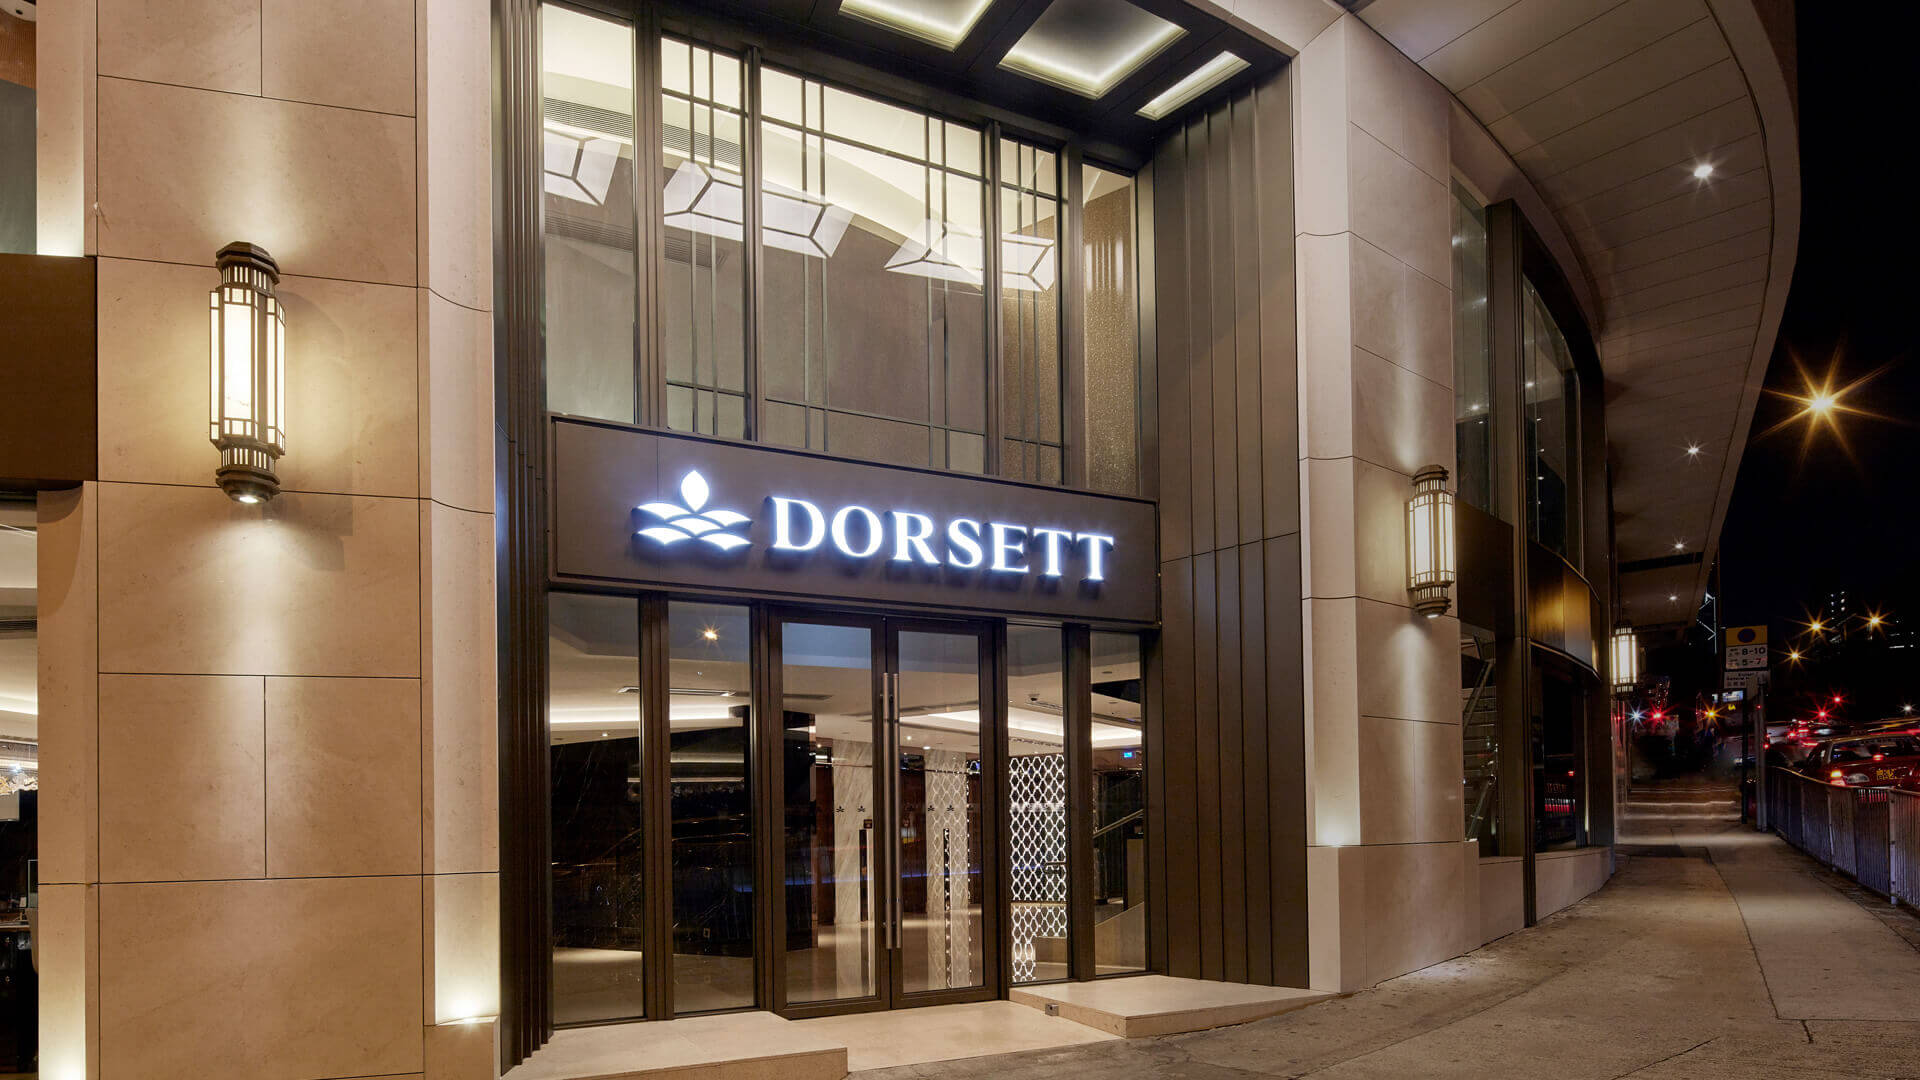 Dorsett Wanchai - Dorsett Your Rewards